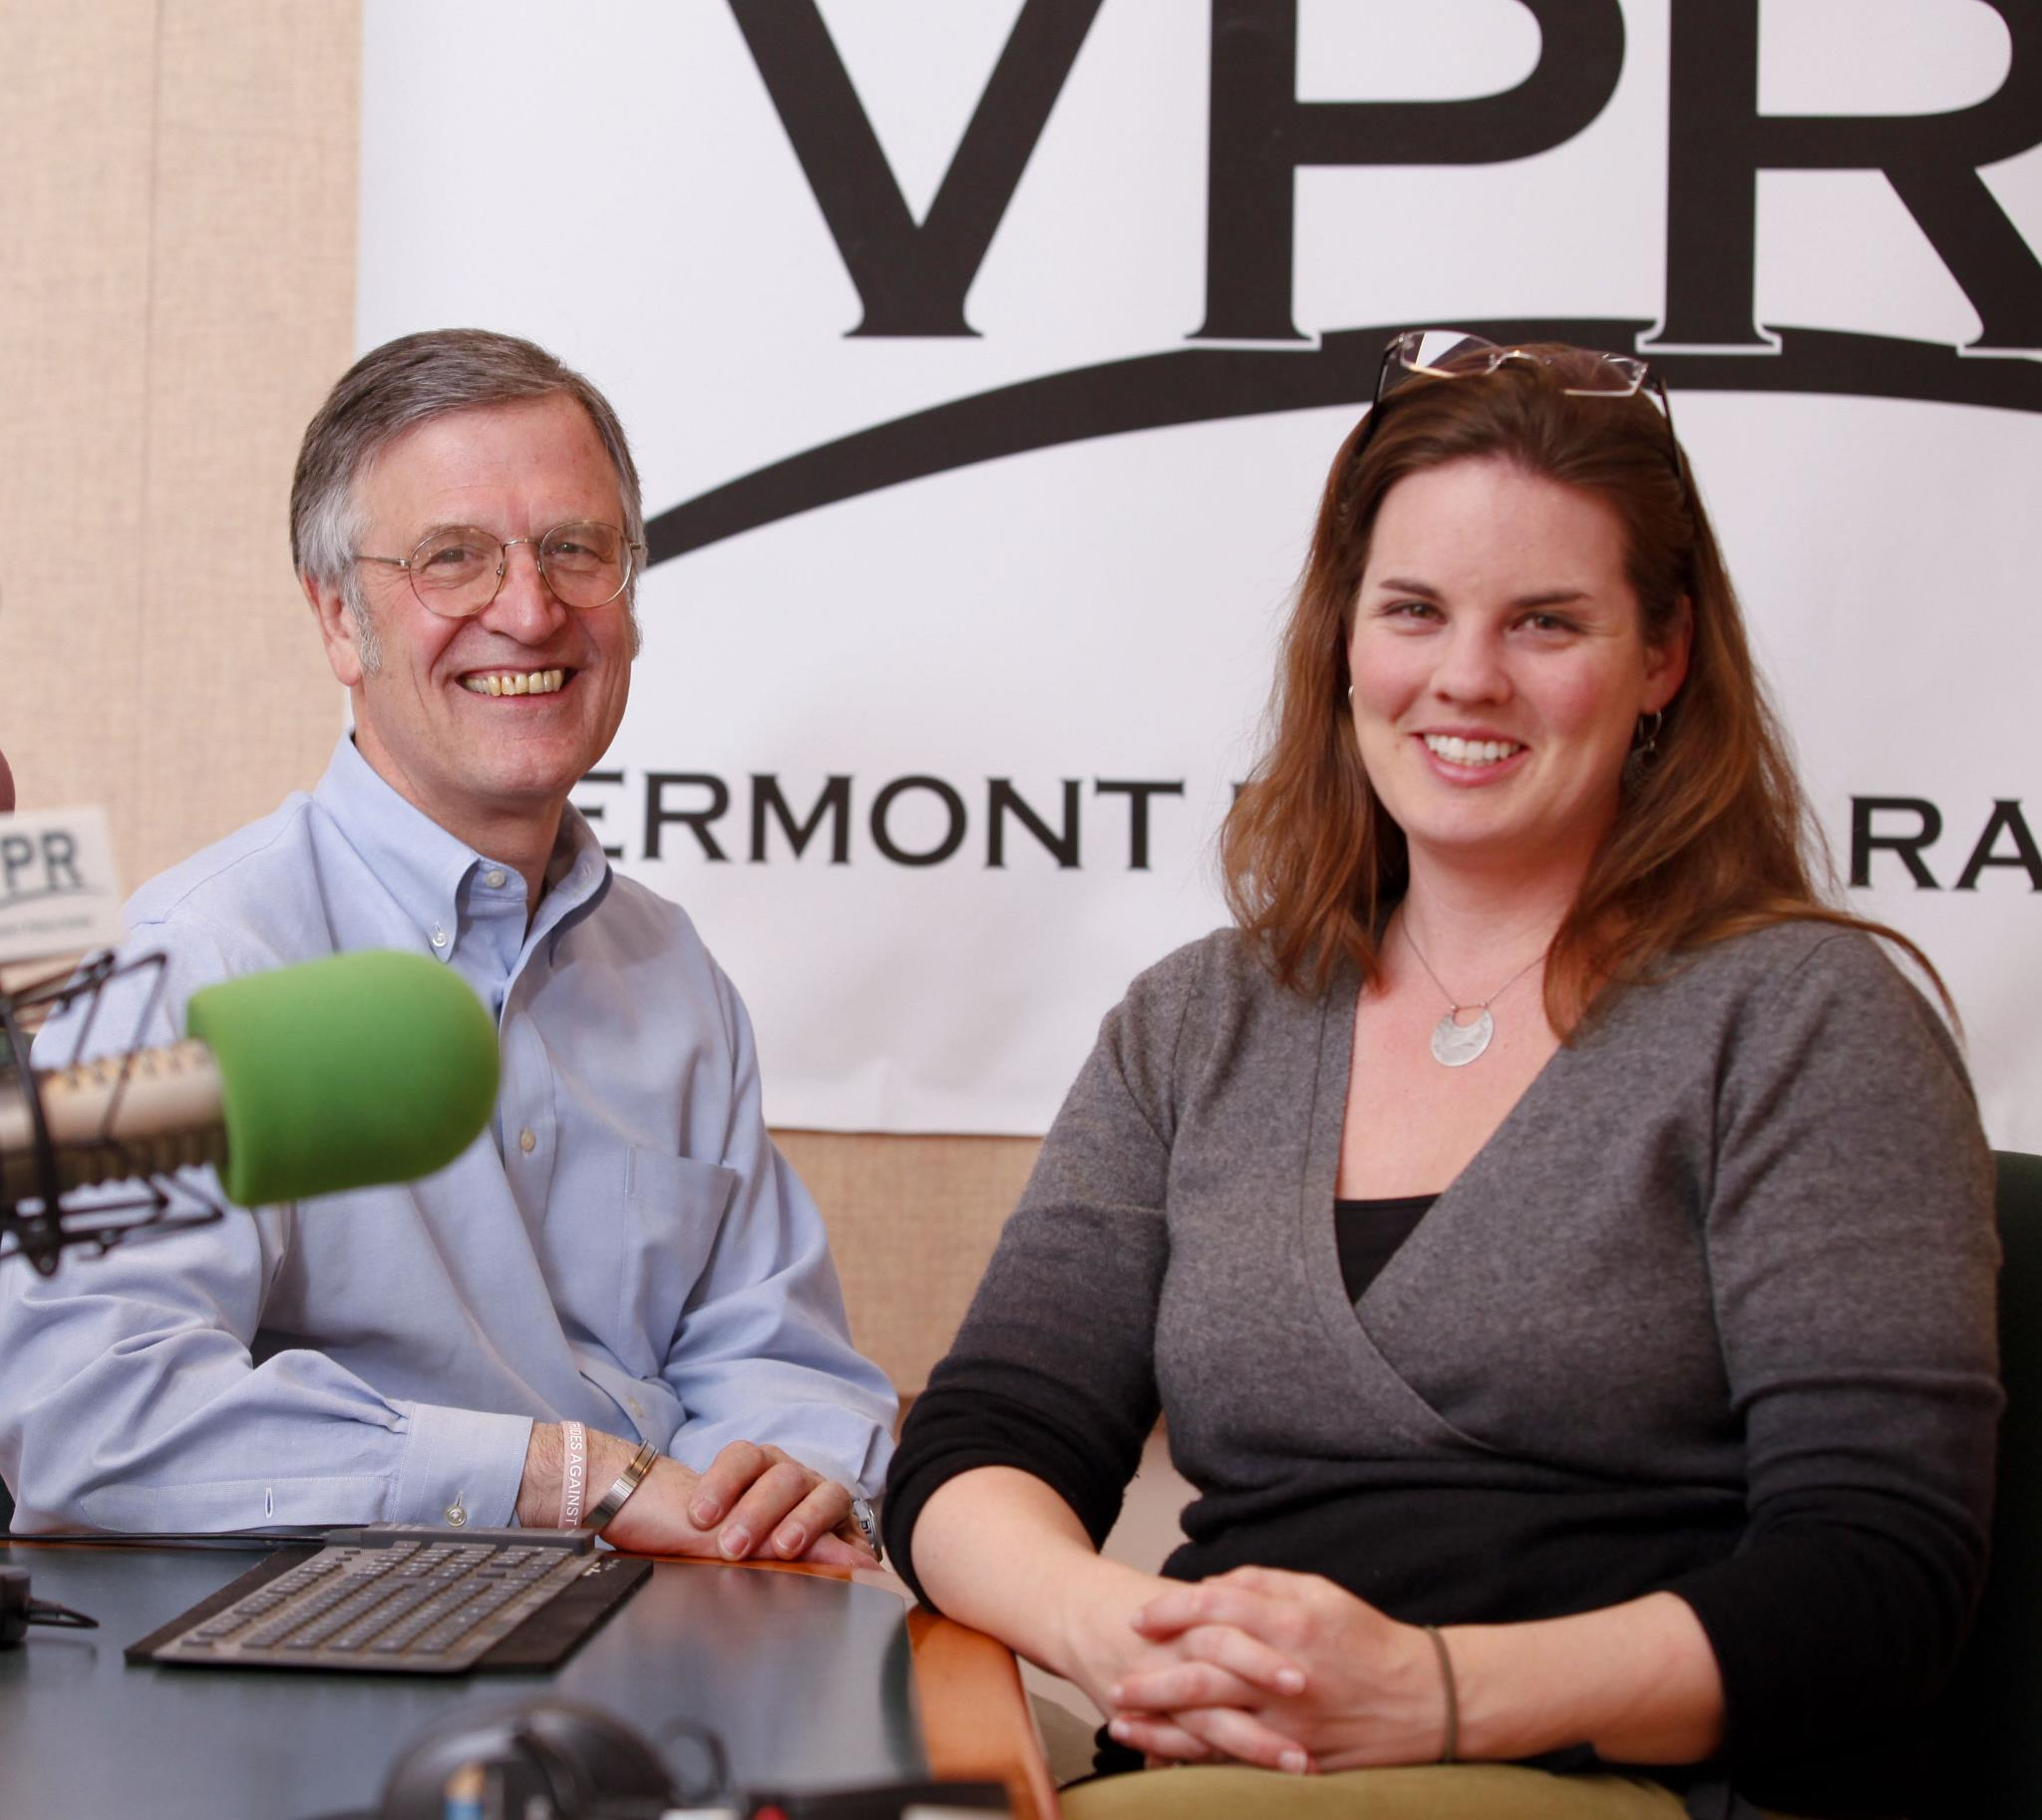 VPR Senior Reporter Bob Kinzel and Vermont Edition Host Jane Lindholm will moderate the first gubernatorial debate of the season.